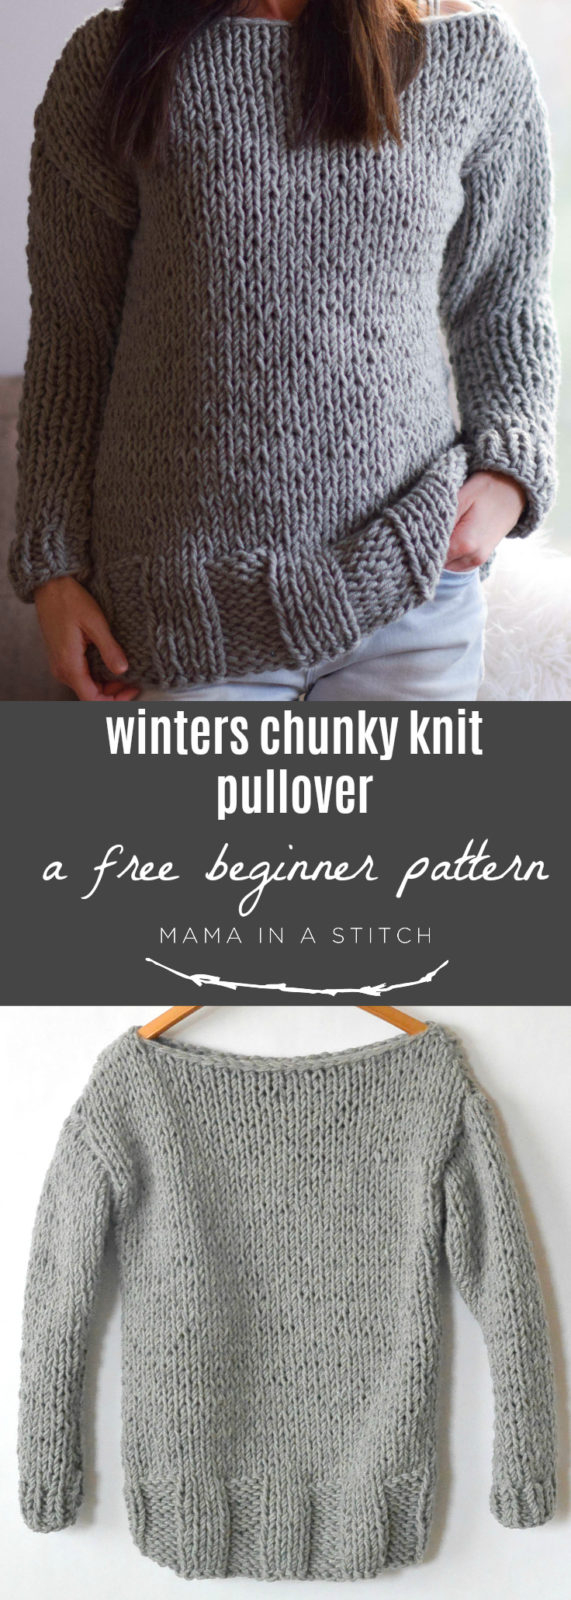 Free Cardigan Knitting Pattern Winters Chunky Easy Knit Pullover Pattern Mama In A Stitch